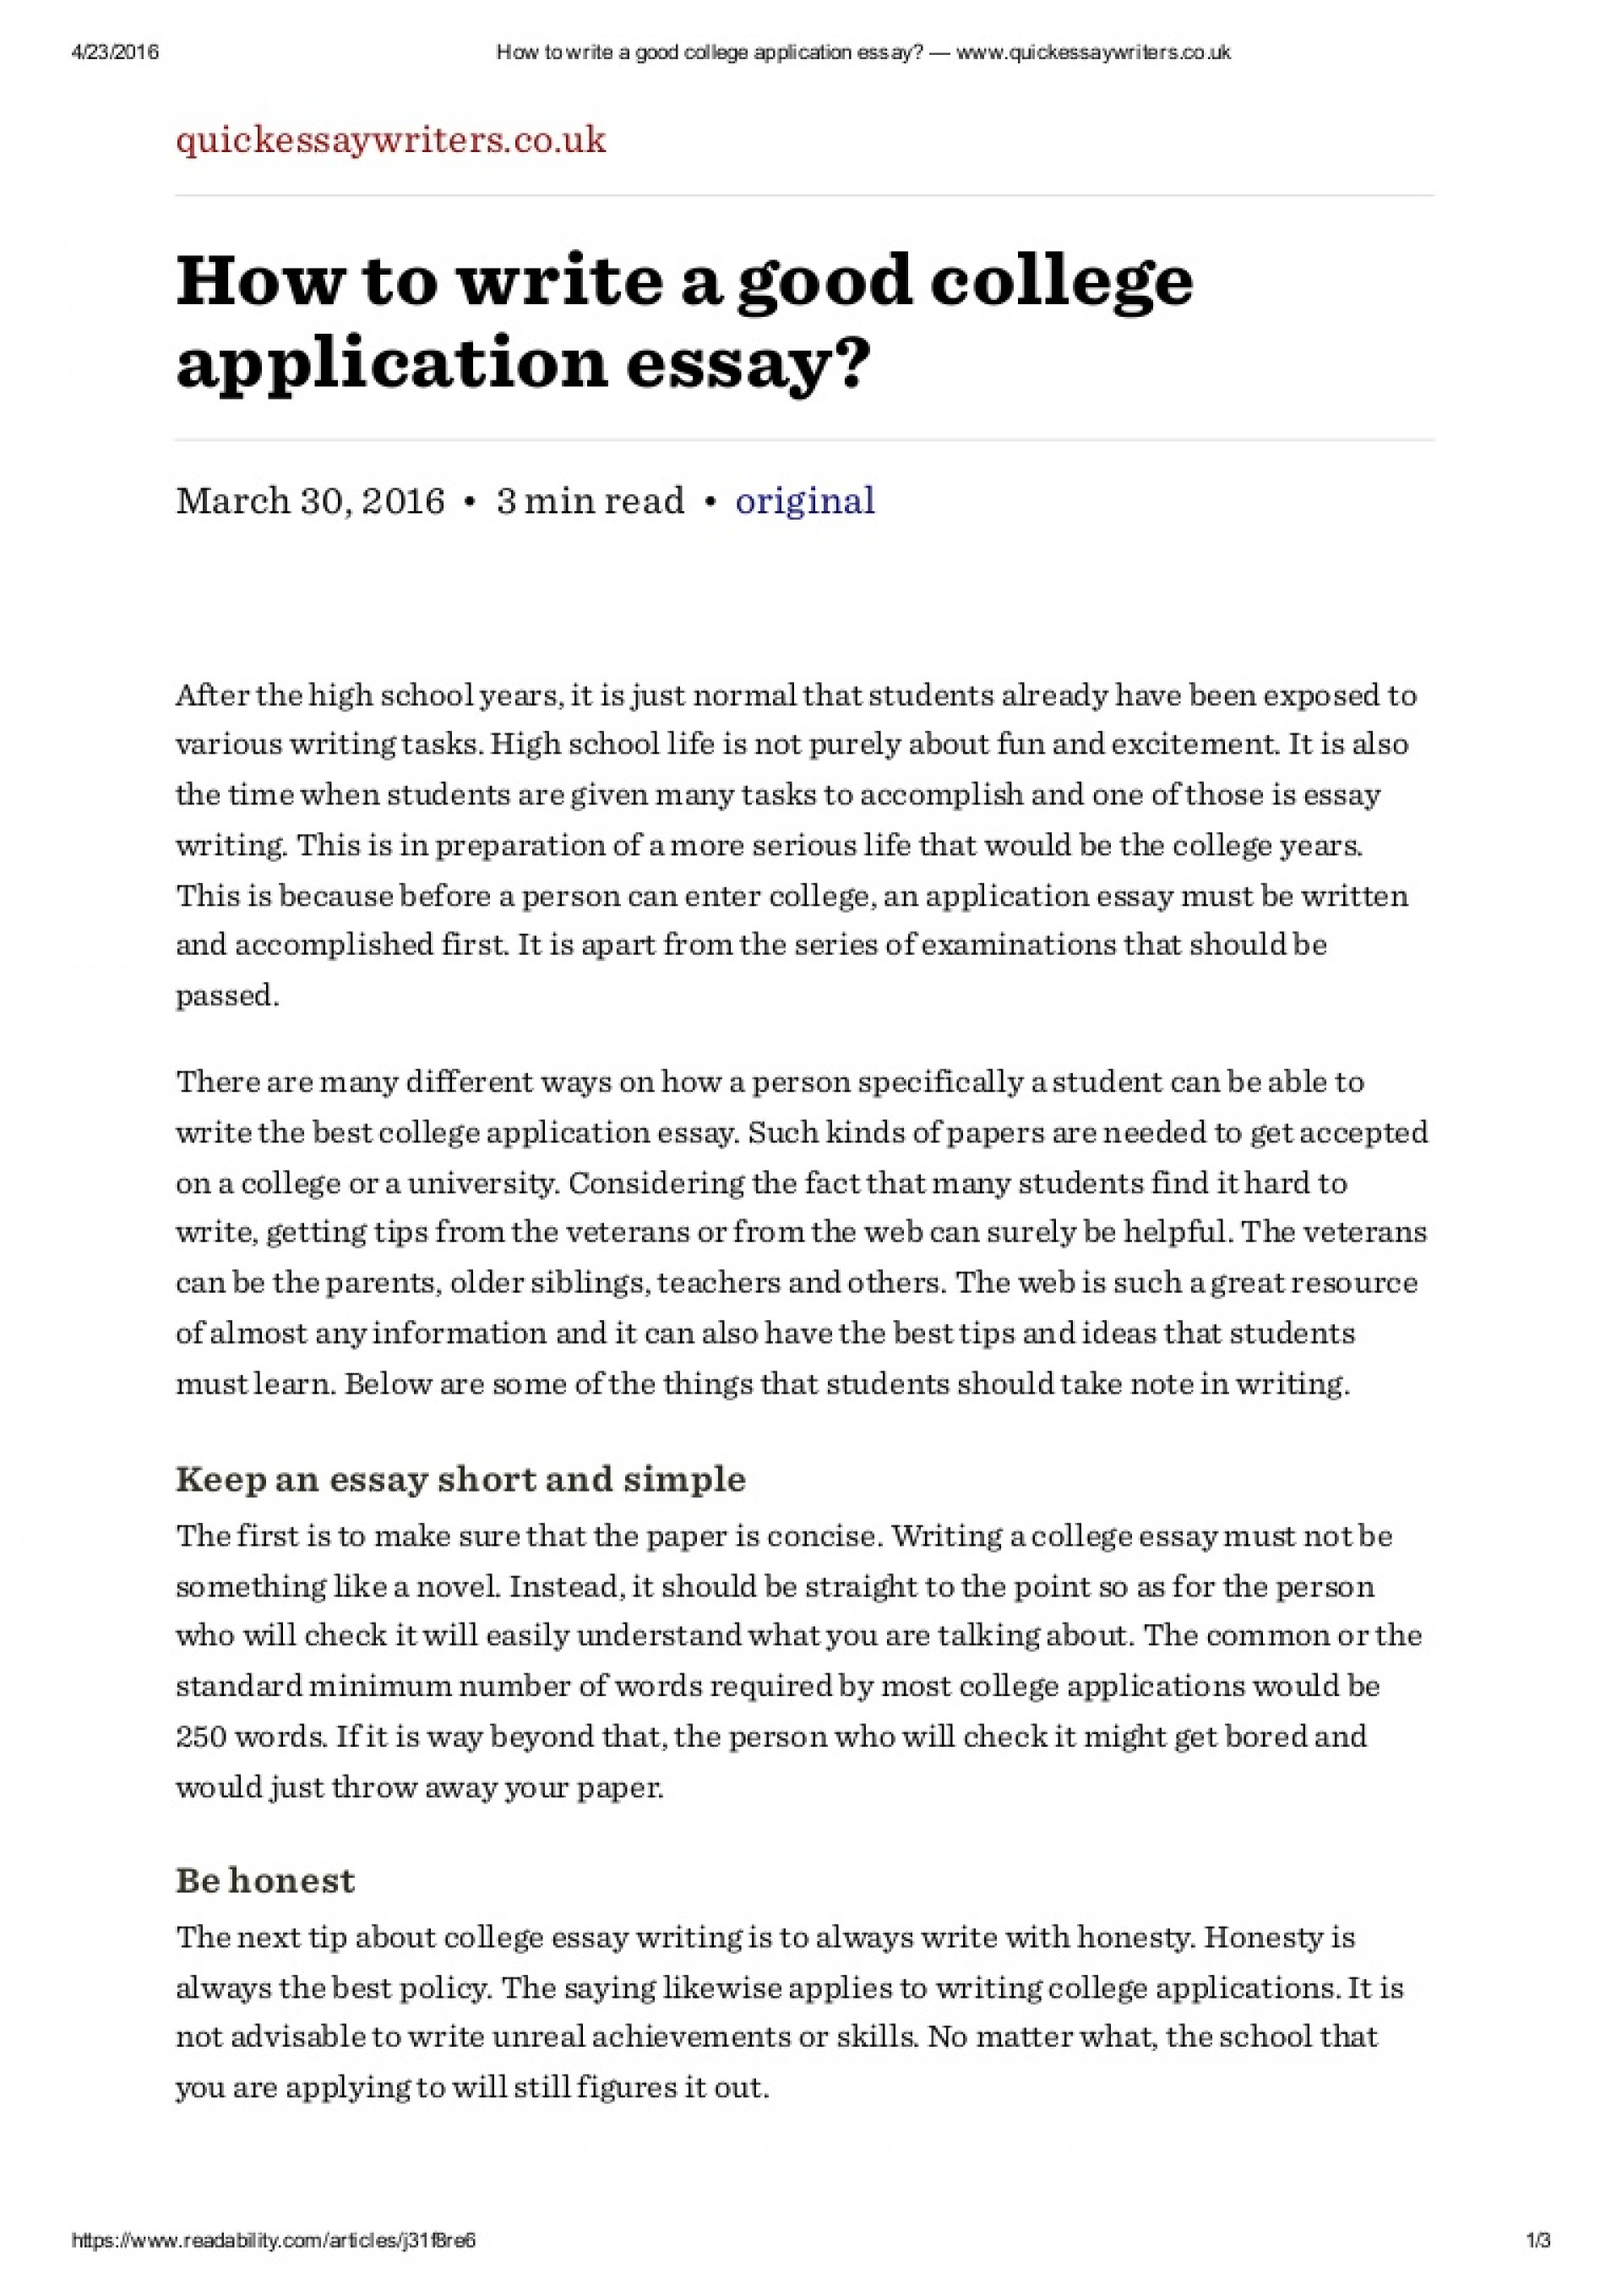 009 Essay Example College Application Howtowriteagoodcollegeapplicationessaywww Thumbnail Unbelievable Template Admission Topics To Avoid Help 1920